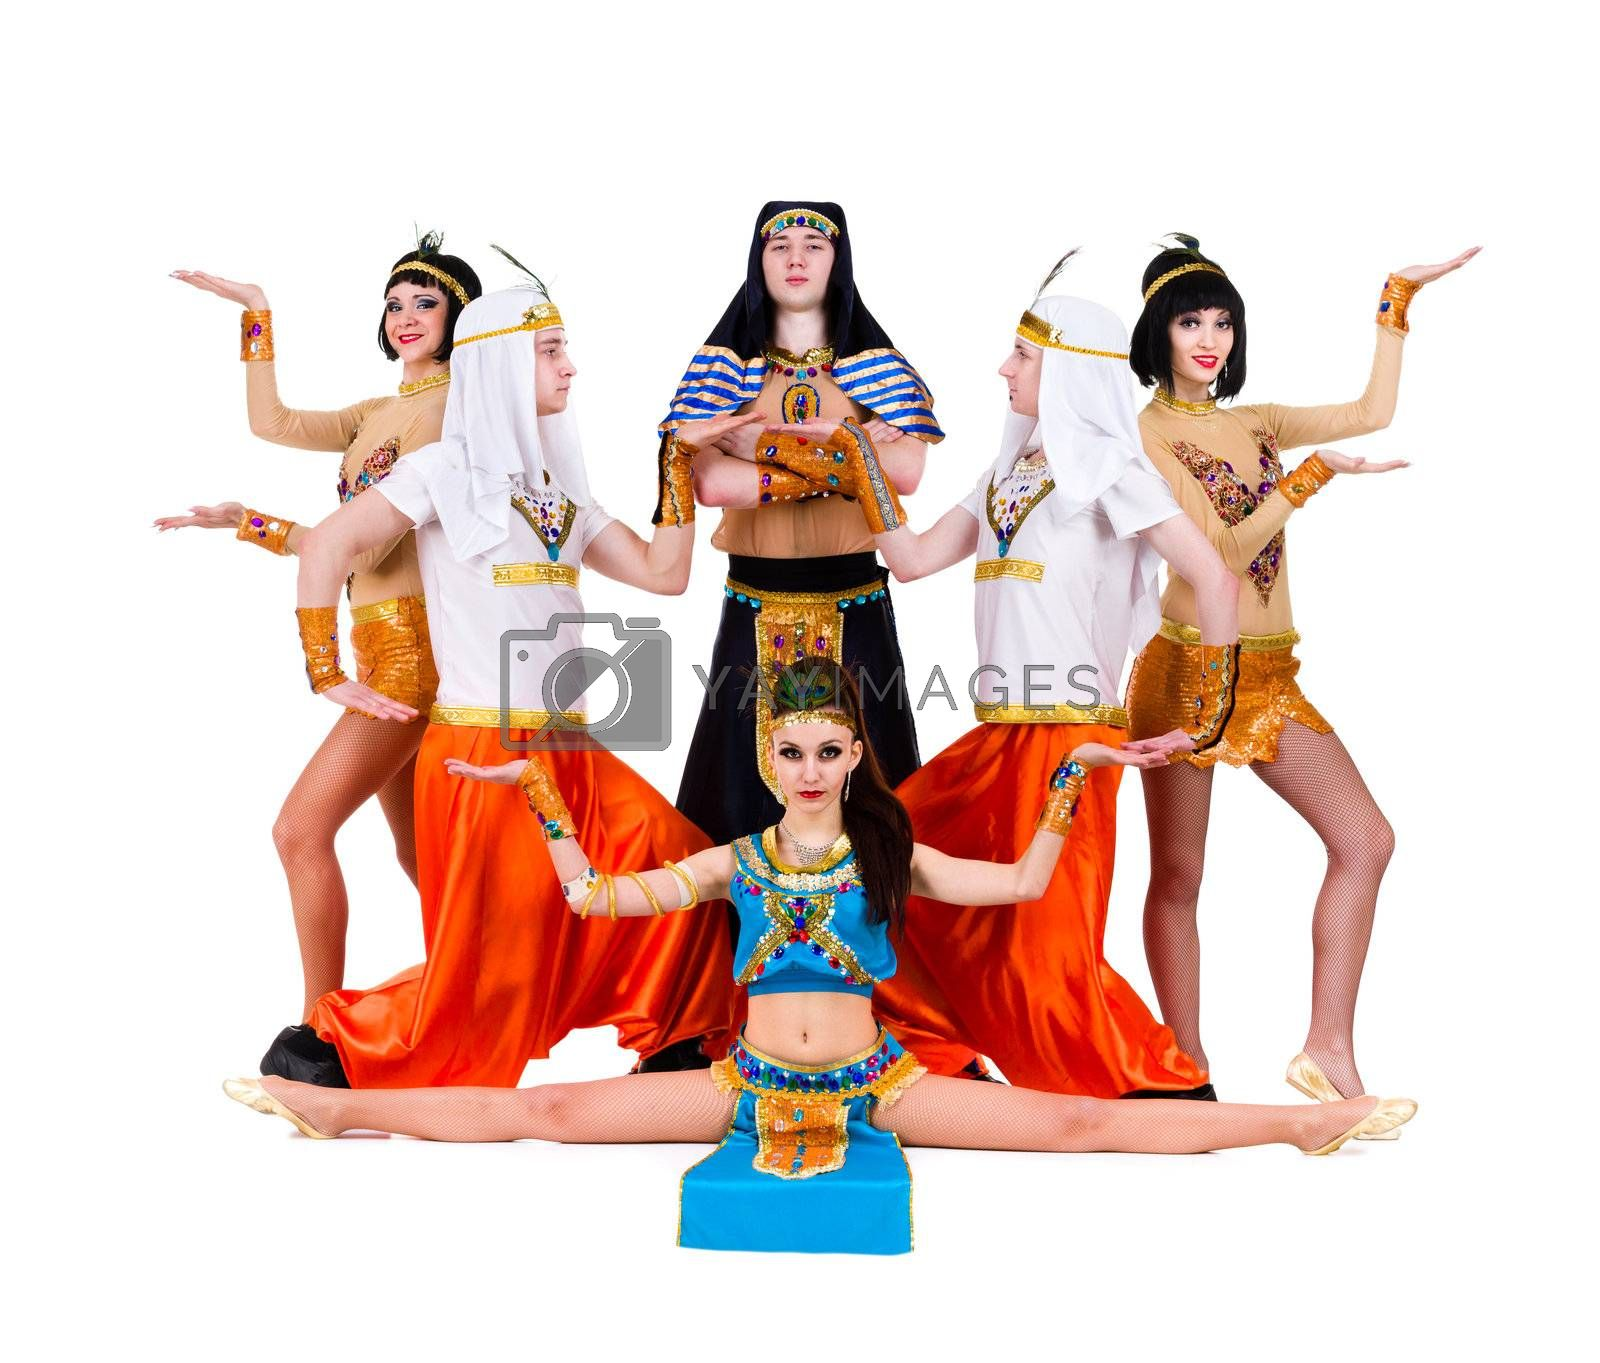 dance team dressed in Egyptian costumes posing.  Isolated on white background in full length.